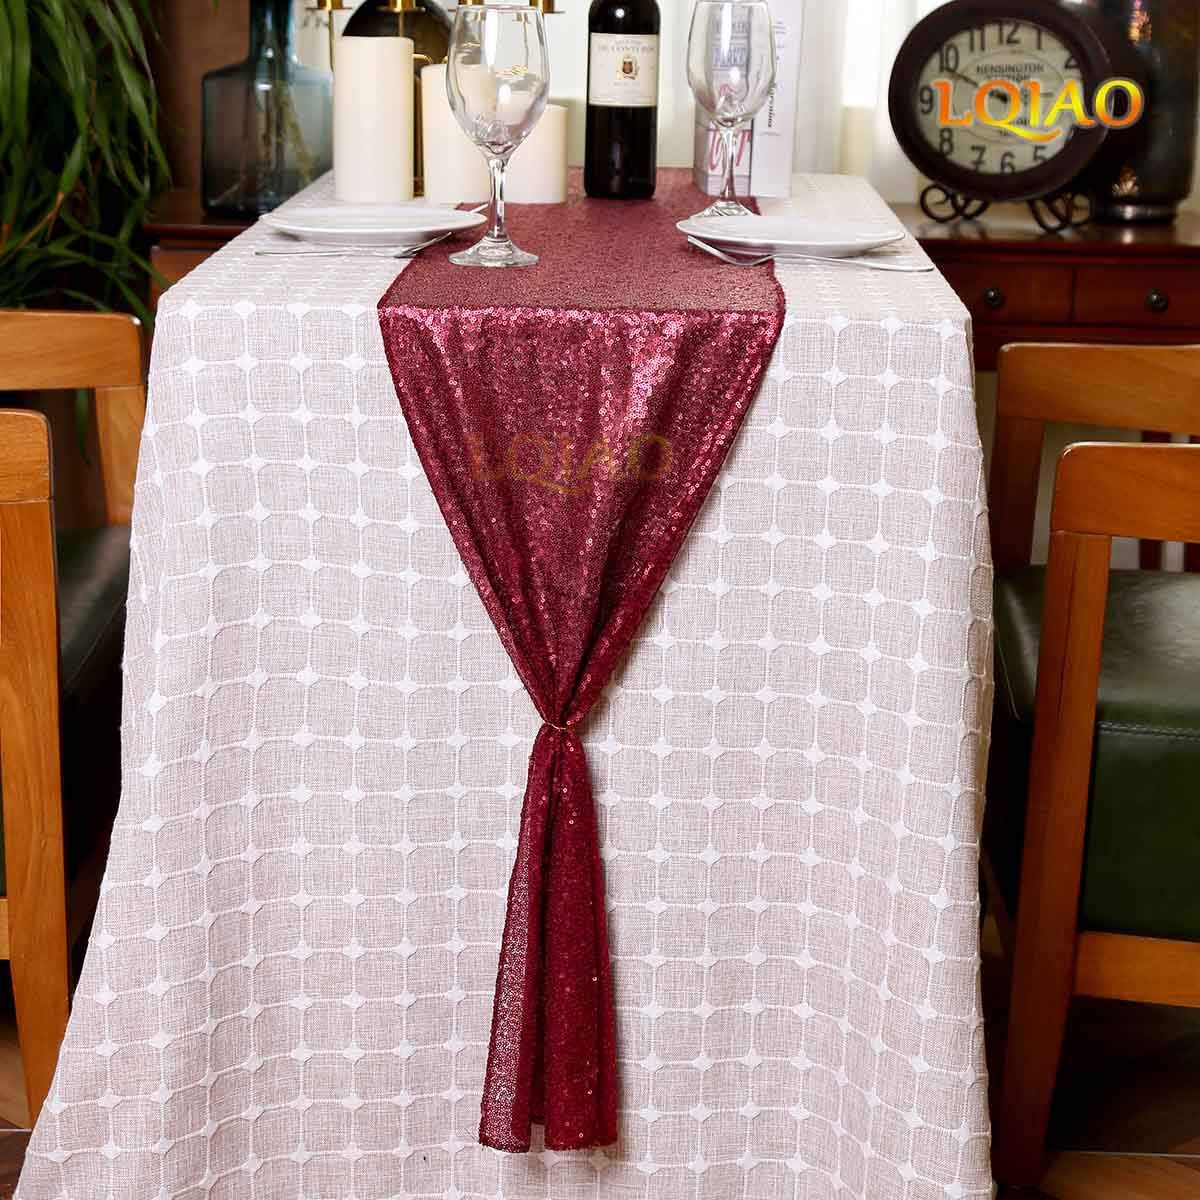 LQIAO Matte Burgundy Sequin Table Runner Paillette Fabric Metallic Runner  Linens Thanksgiving Christmas Wedding DIY